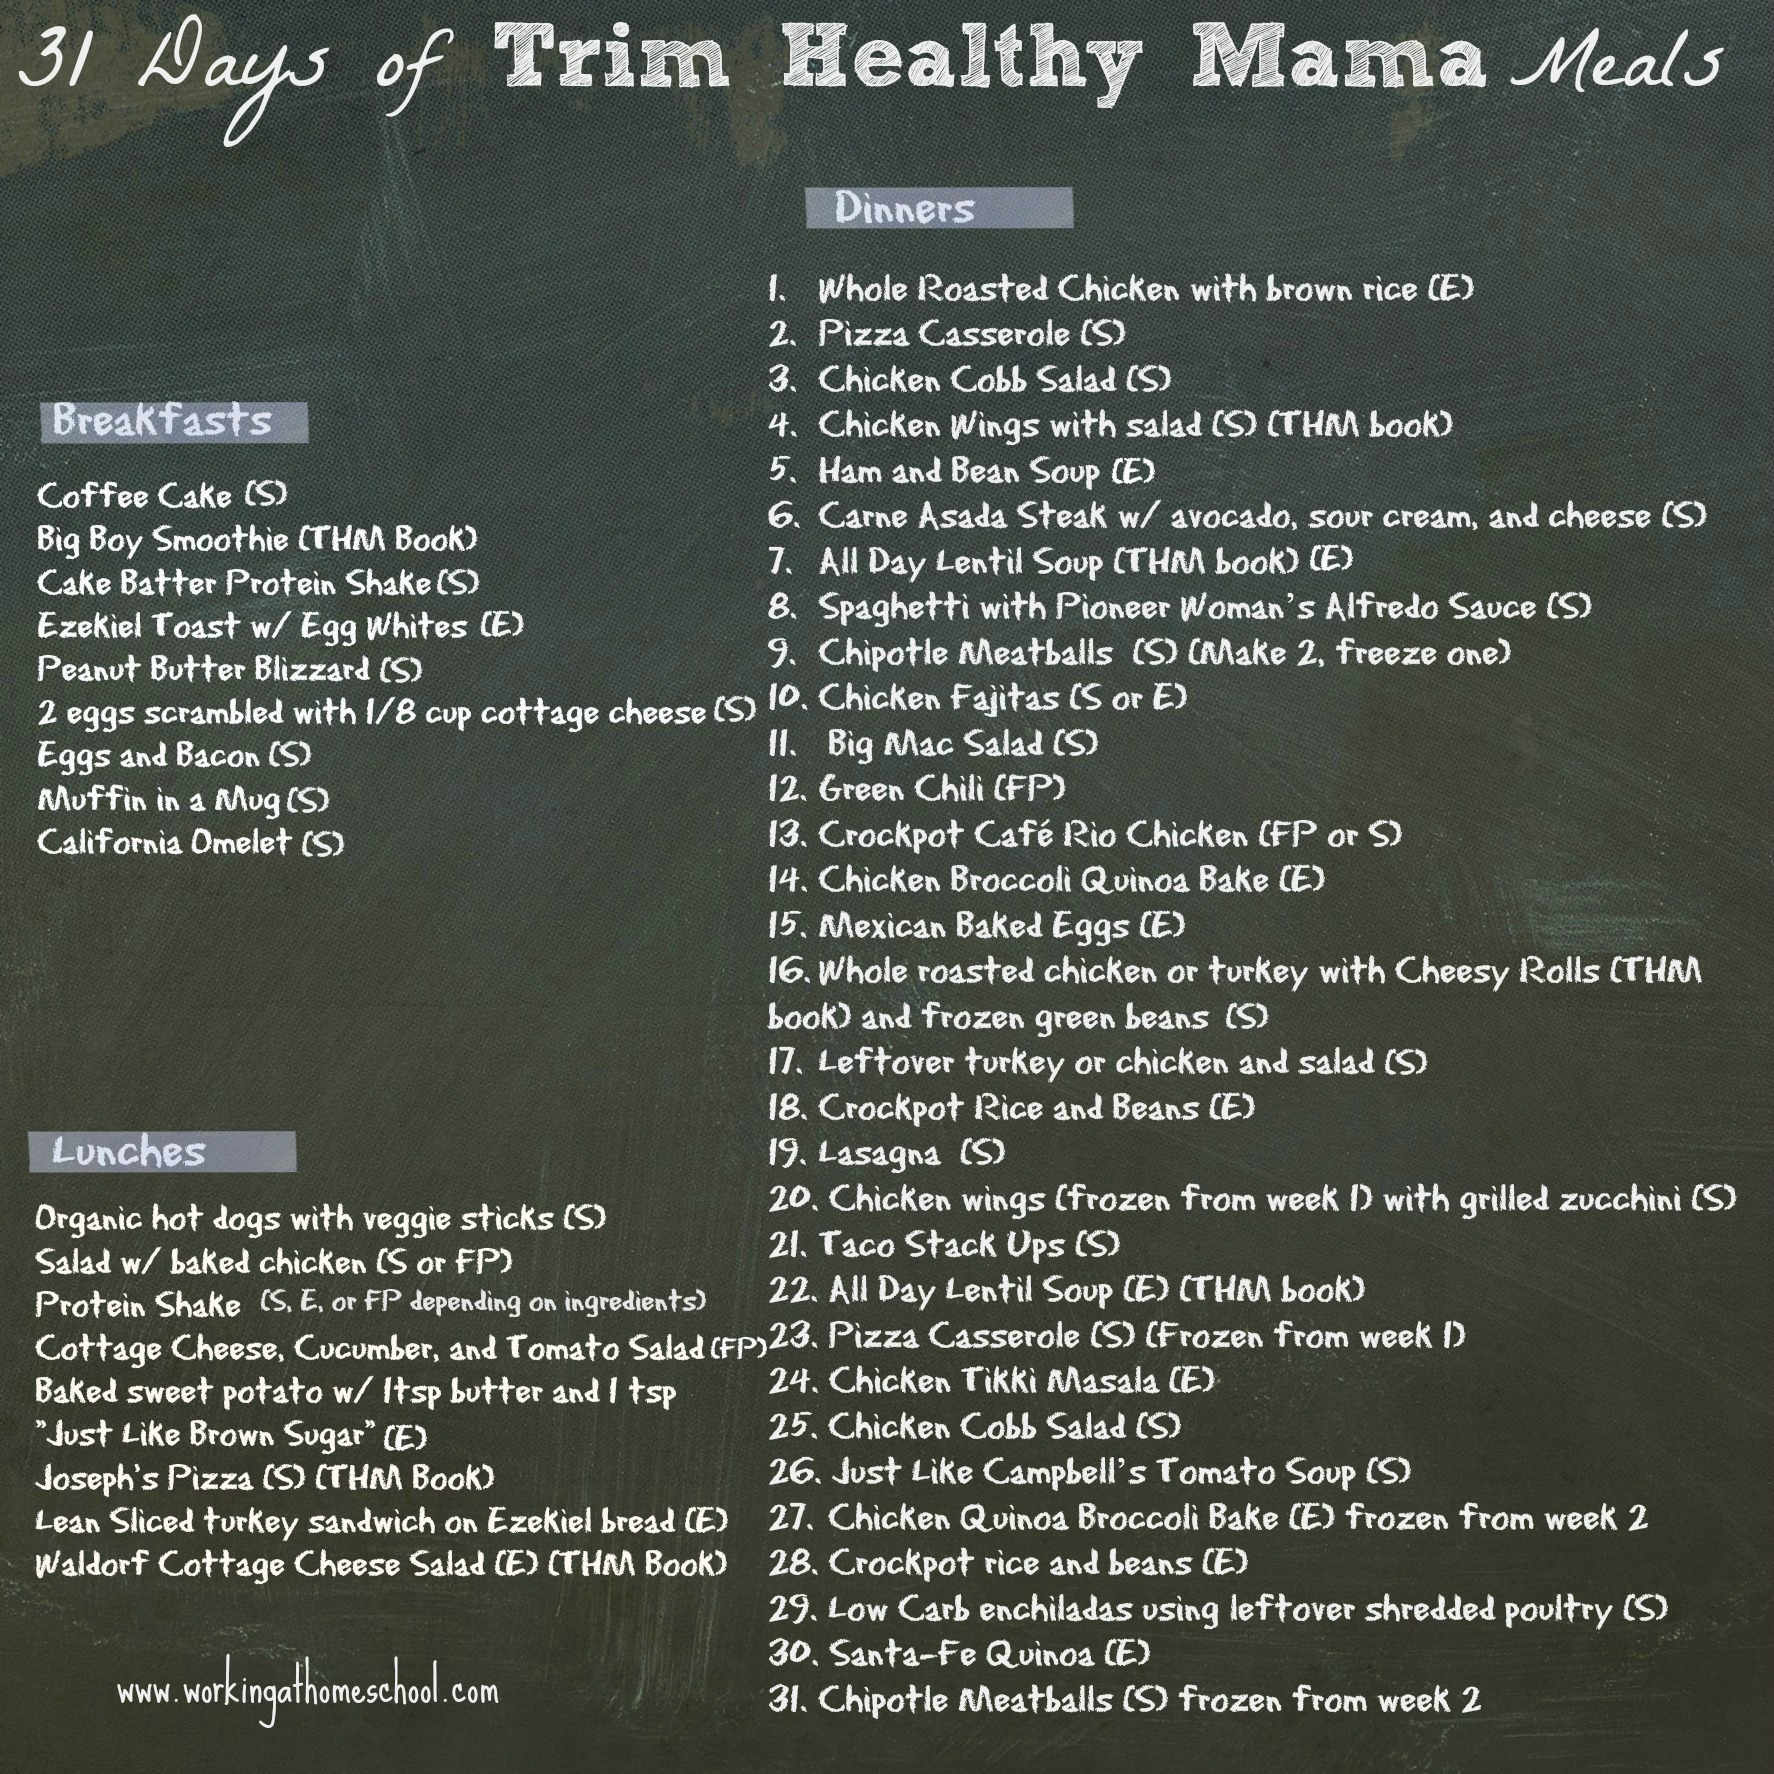 image about Trim Healthy Mama Printable Food List named Fresh new Printable Browsing Lists for 31 Times of Slim Wholesome